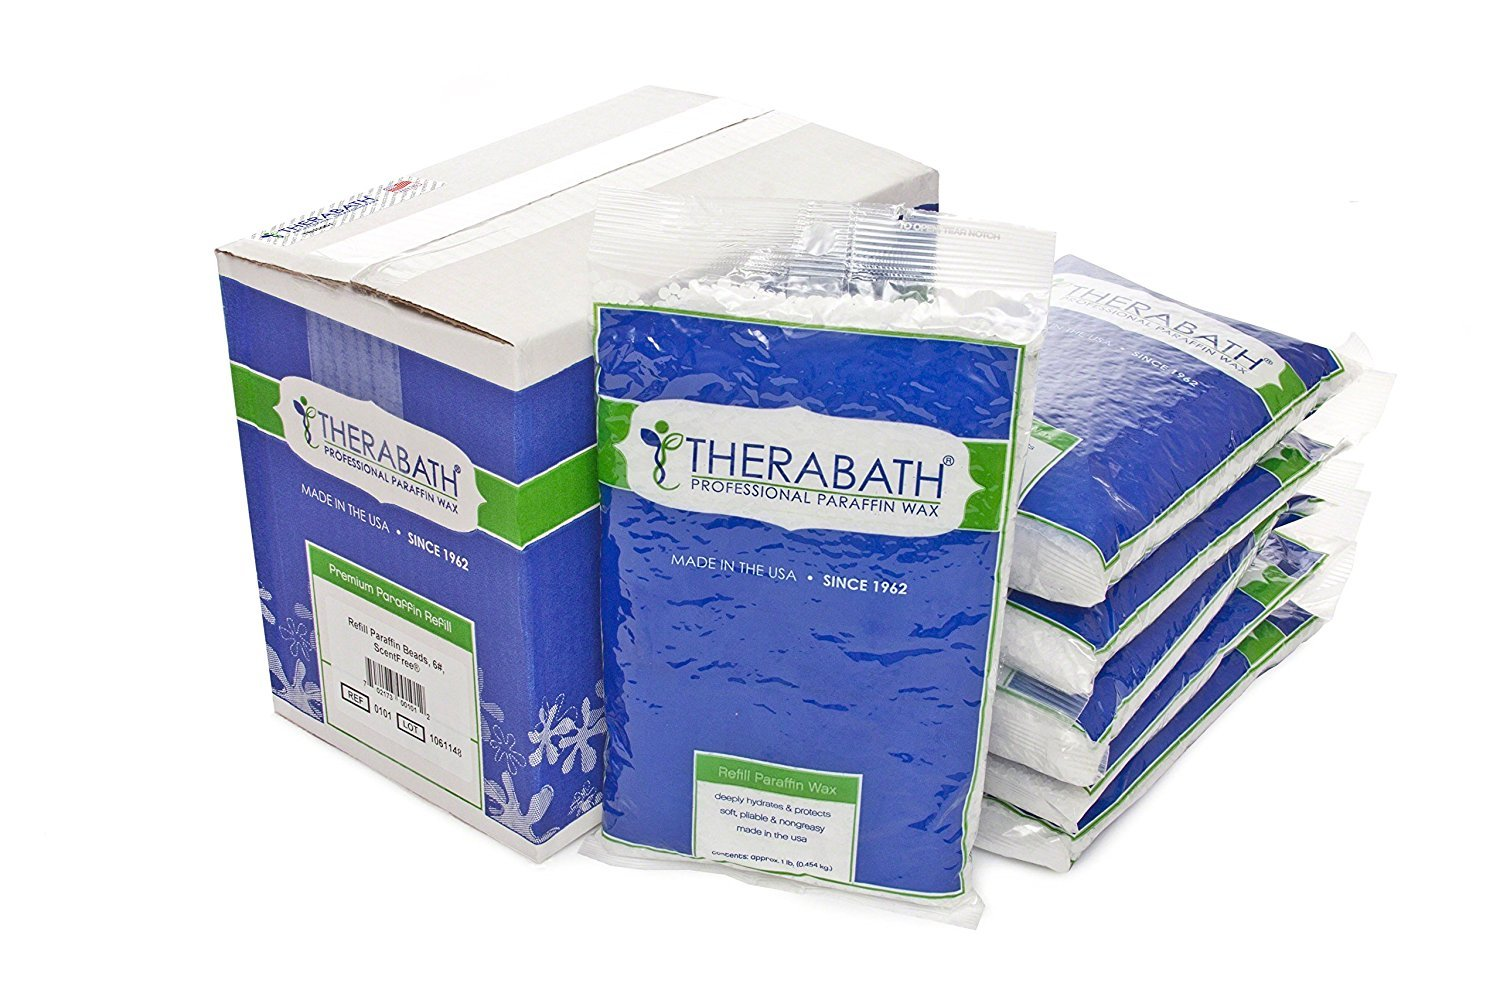 Therabath 0150 Refill Paraffin 24 Lb - Wintergreen- 0150 28881502